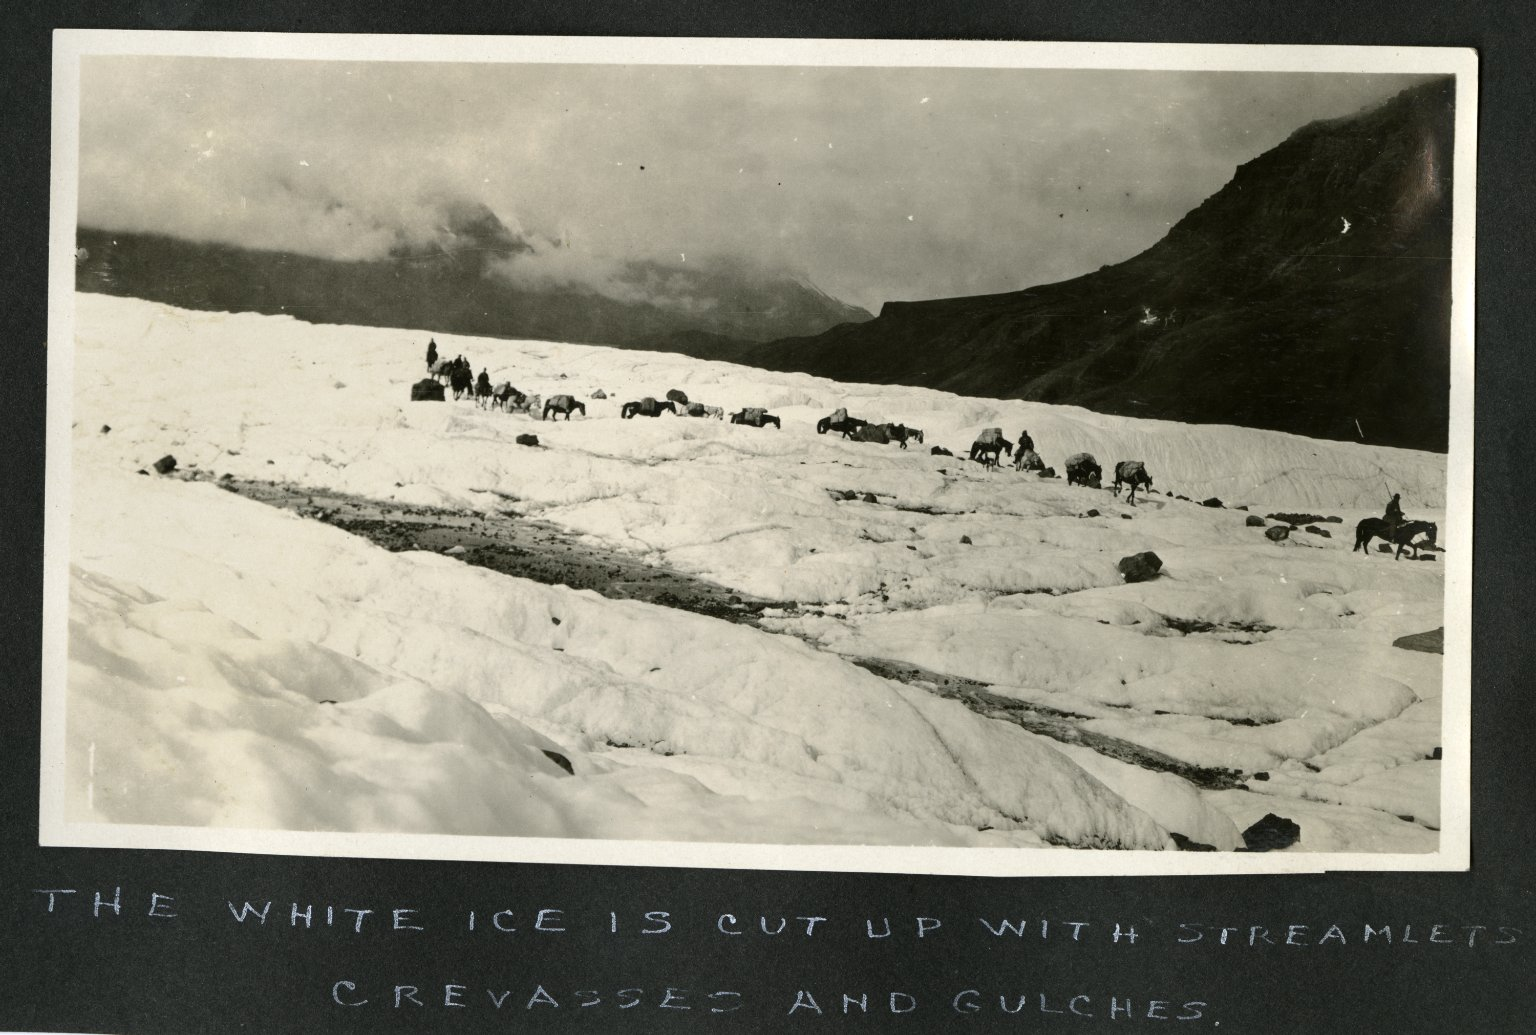 The White Ice is Cut Up With Steamlets, Crevasses, and Gulches.